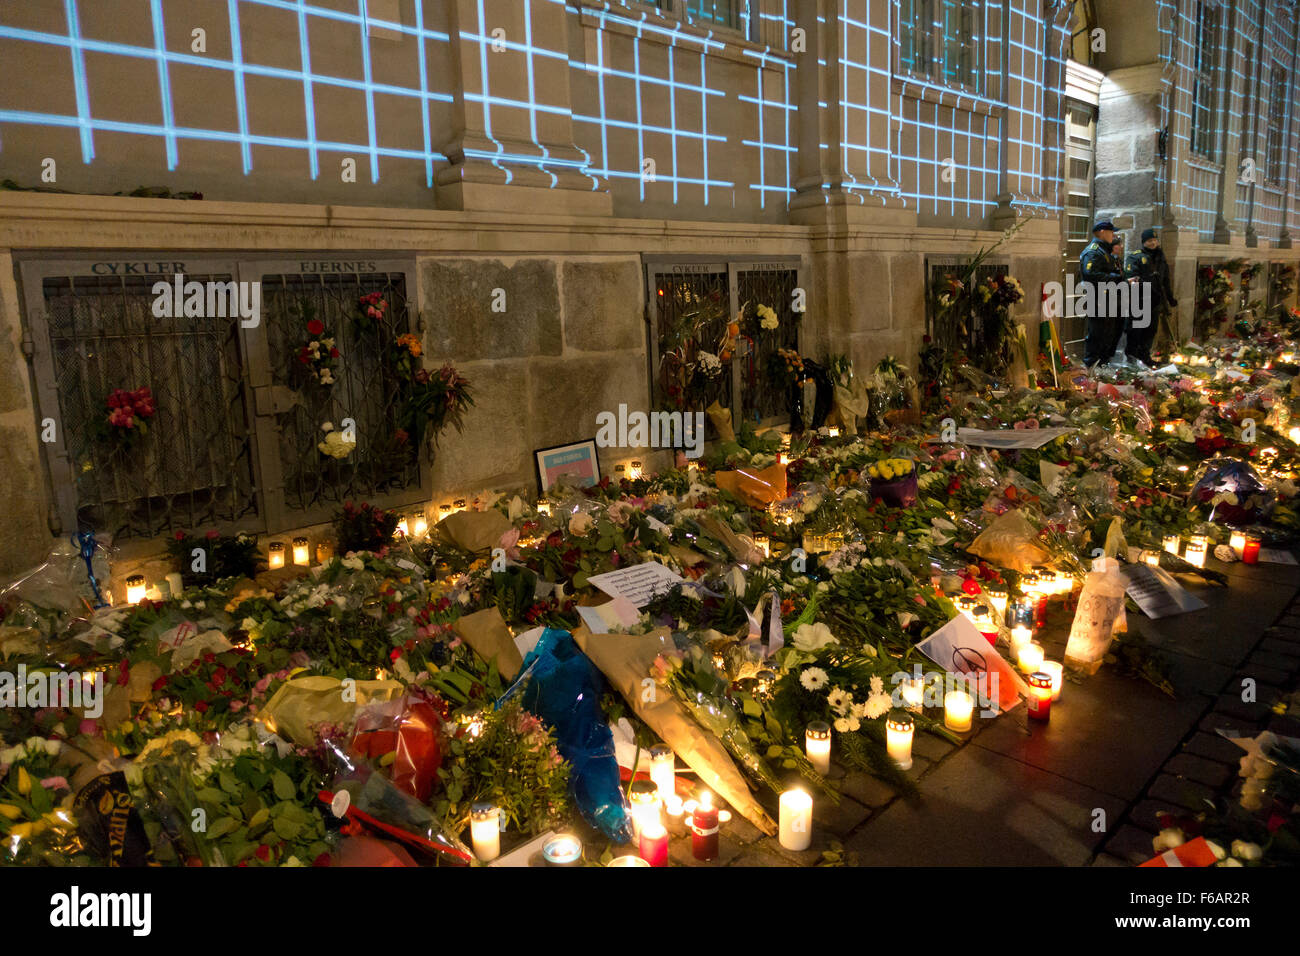 Copenhagen, Denmark, 15th November, 2015. Thousands of people in Copenhagen show their solidarity and sympathy with the French people outside the French Embassy in Copenhagen after last Friday's terror attacks in Paris. The huge amount of flowers and messages still grows on the flower beds this Sunday evening after the official memorial events in Copenhagen earlier today and official events and spontaneous actions all over Denmark. Credit:  Niels Quist/Alamy Live News Stock Photo